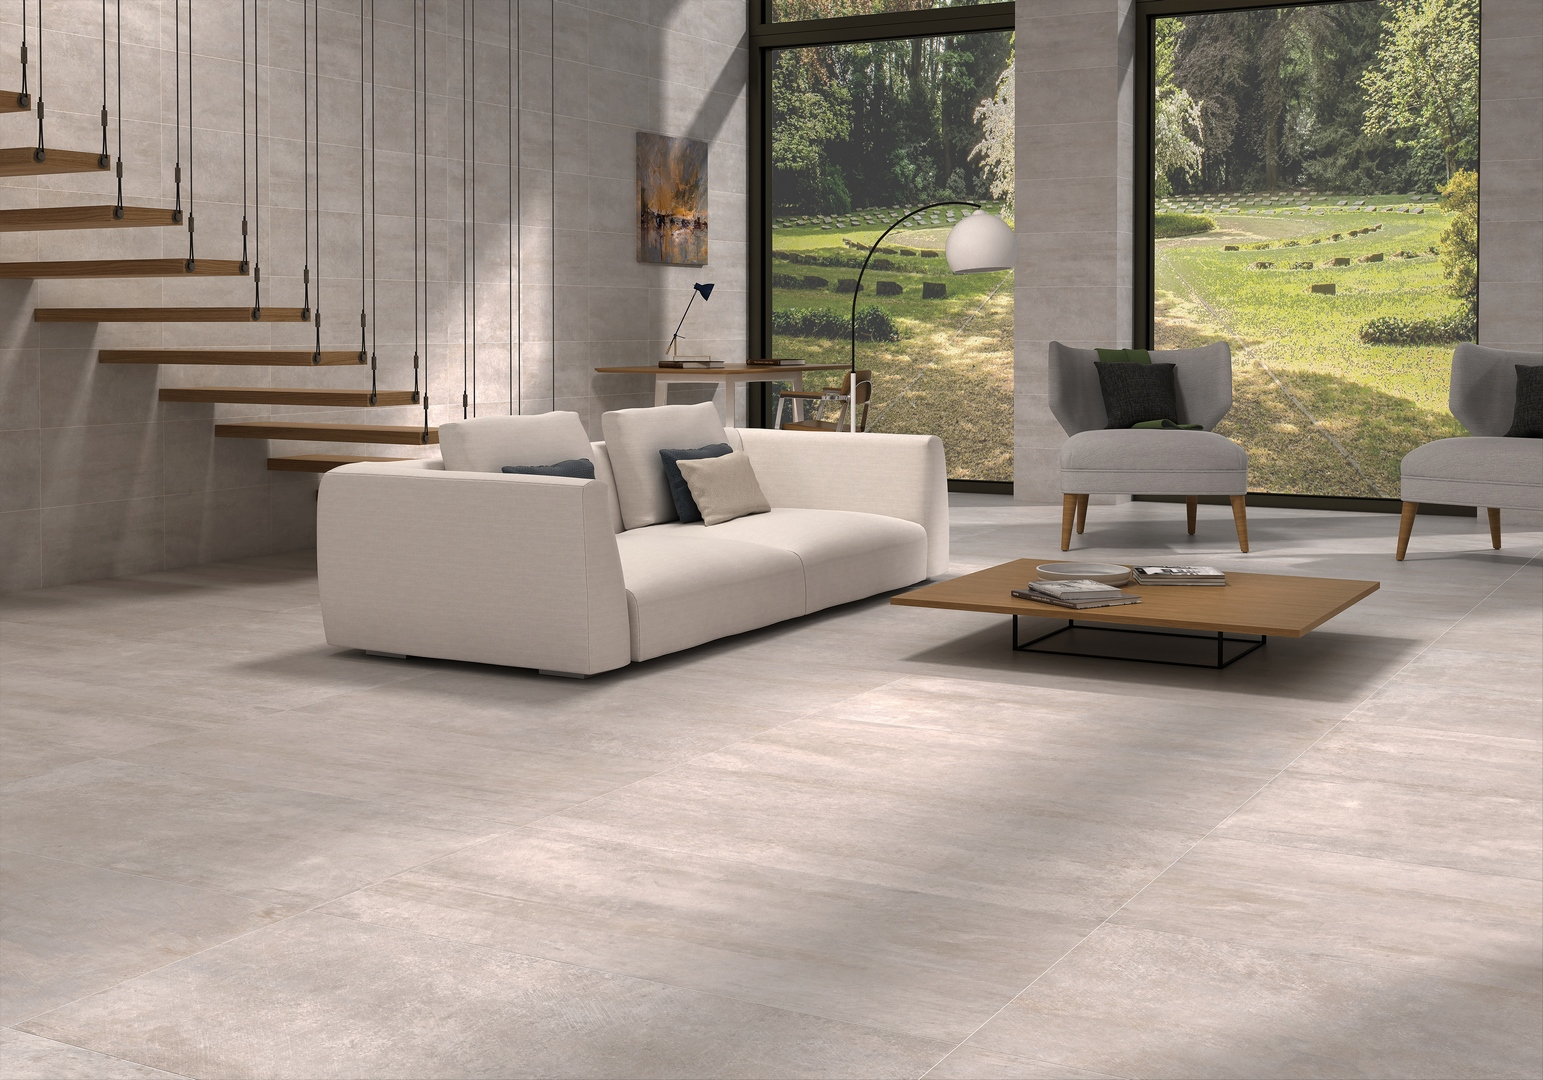 Carrelage interieur blanc brillant interesting carrelage for Carrelage interieur brillant